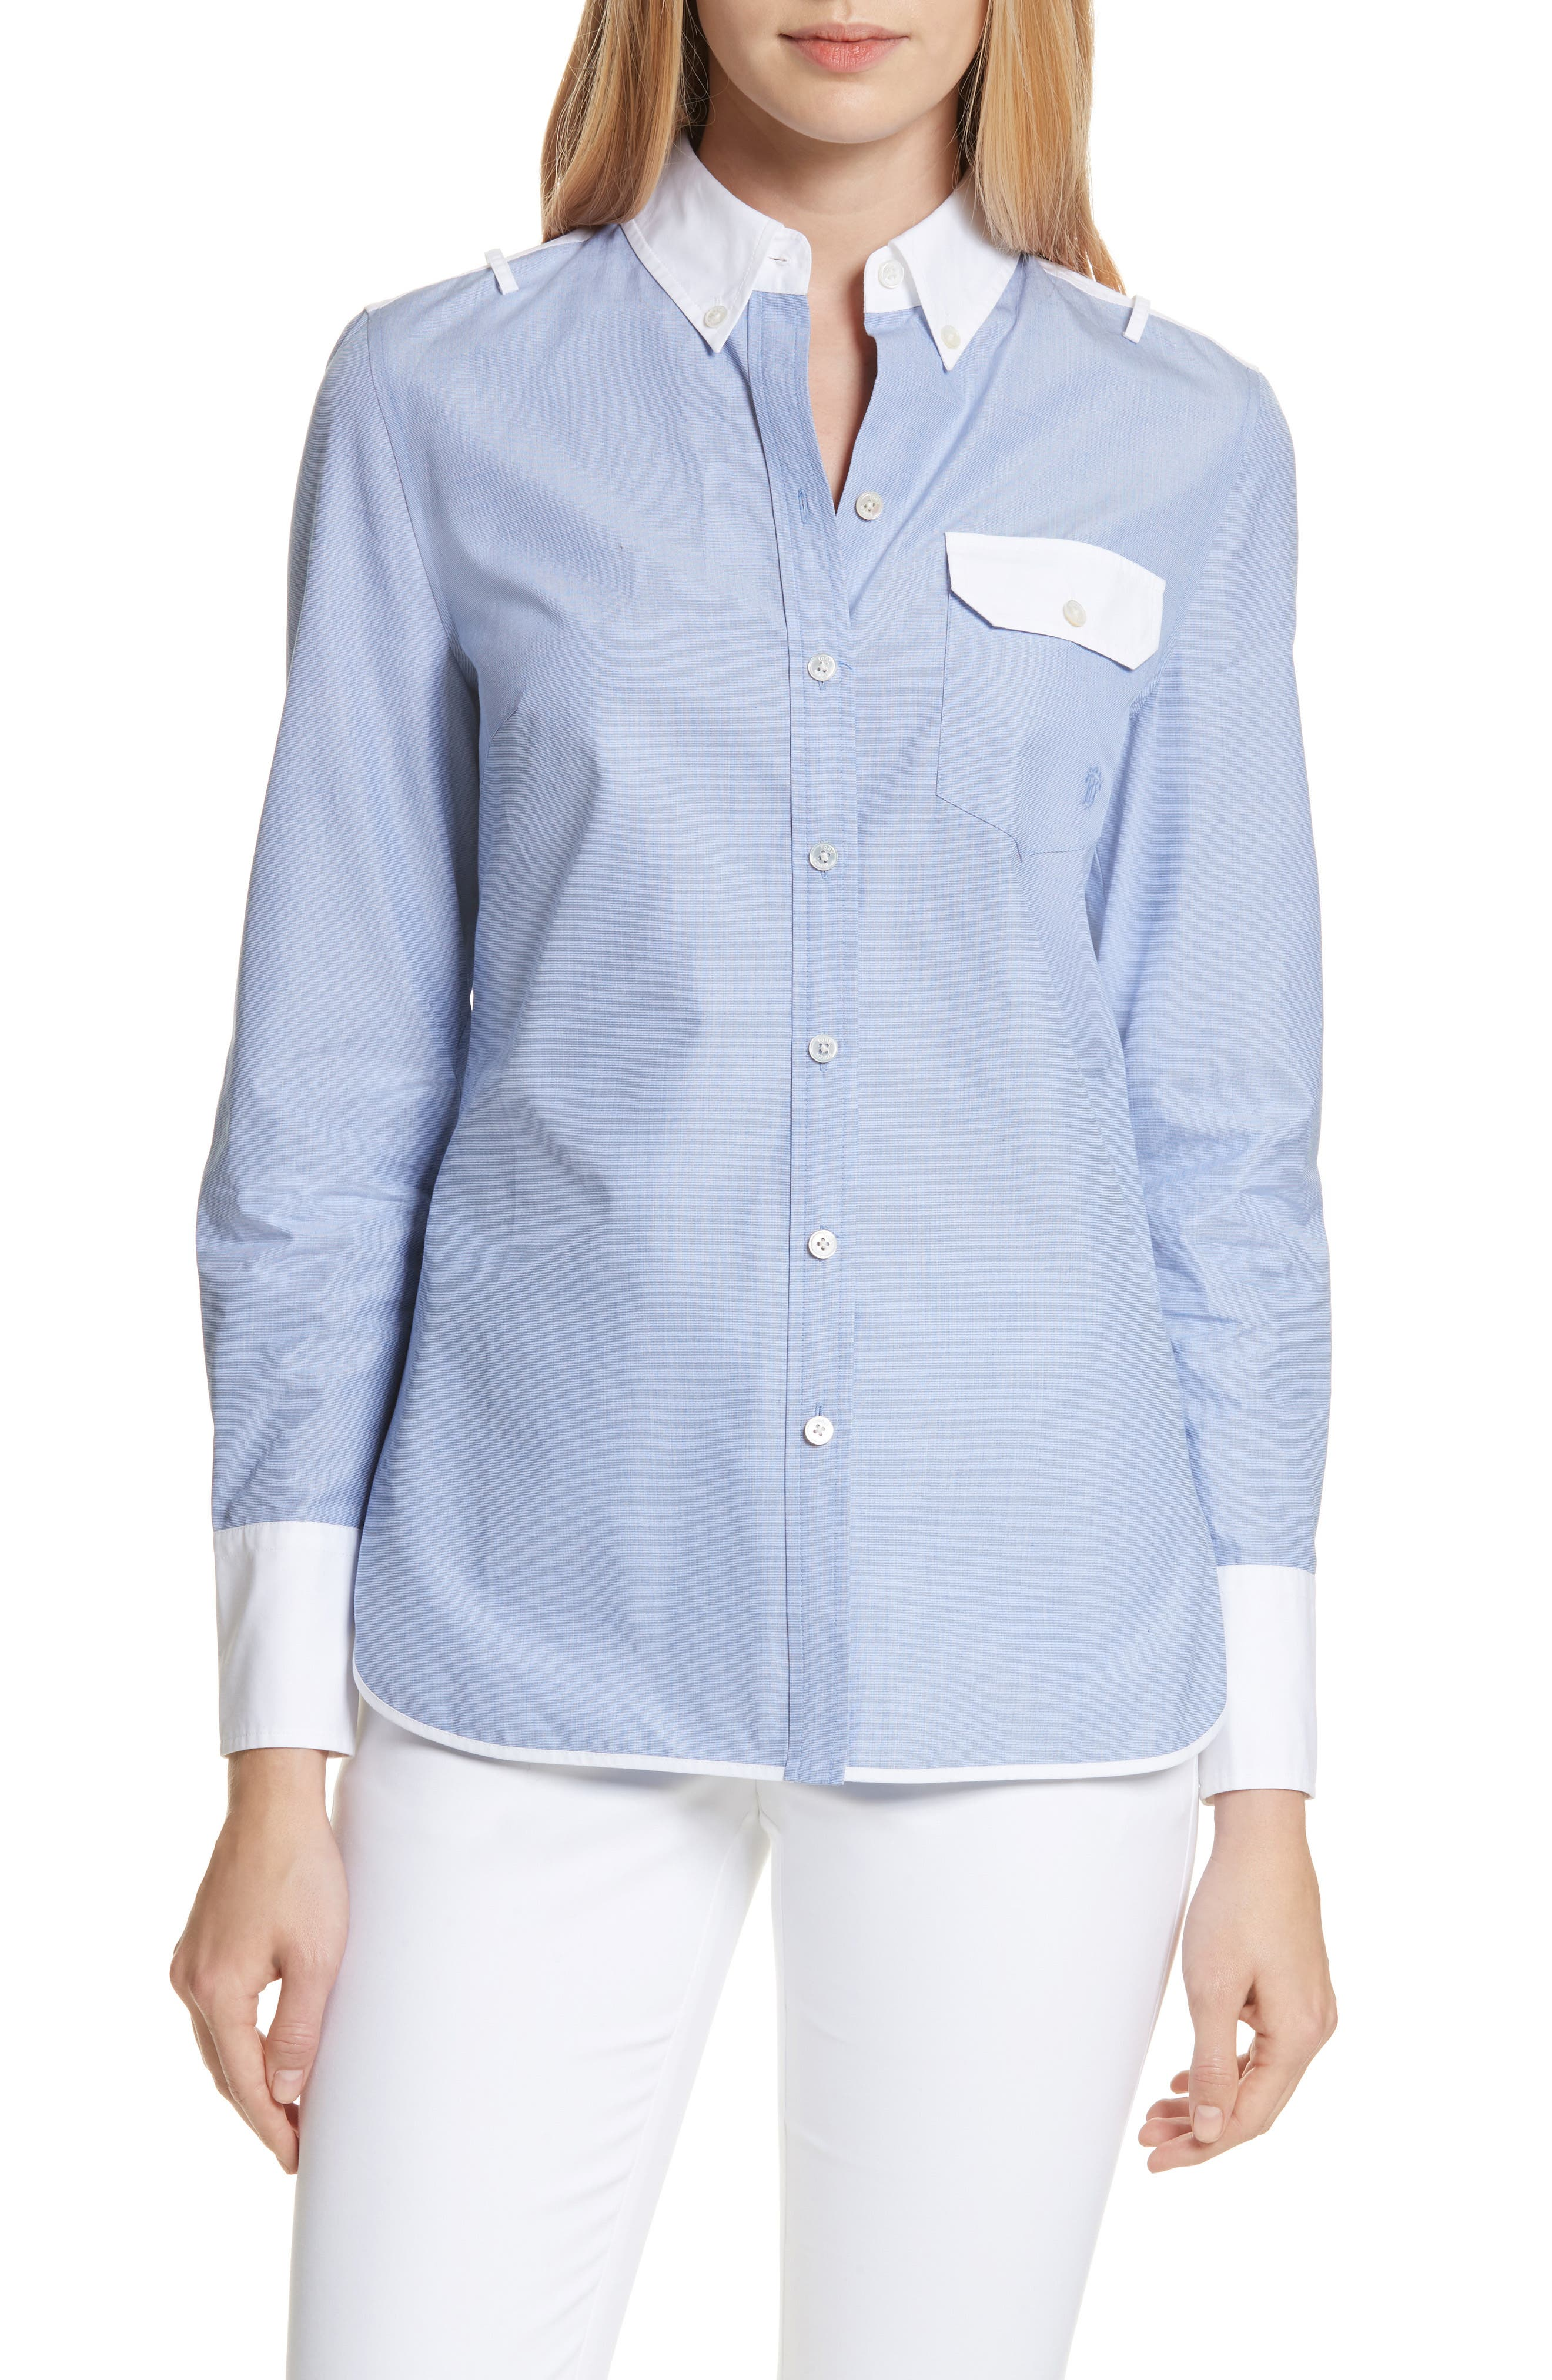 Tory Burch Piper Contrast Cotton Top